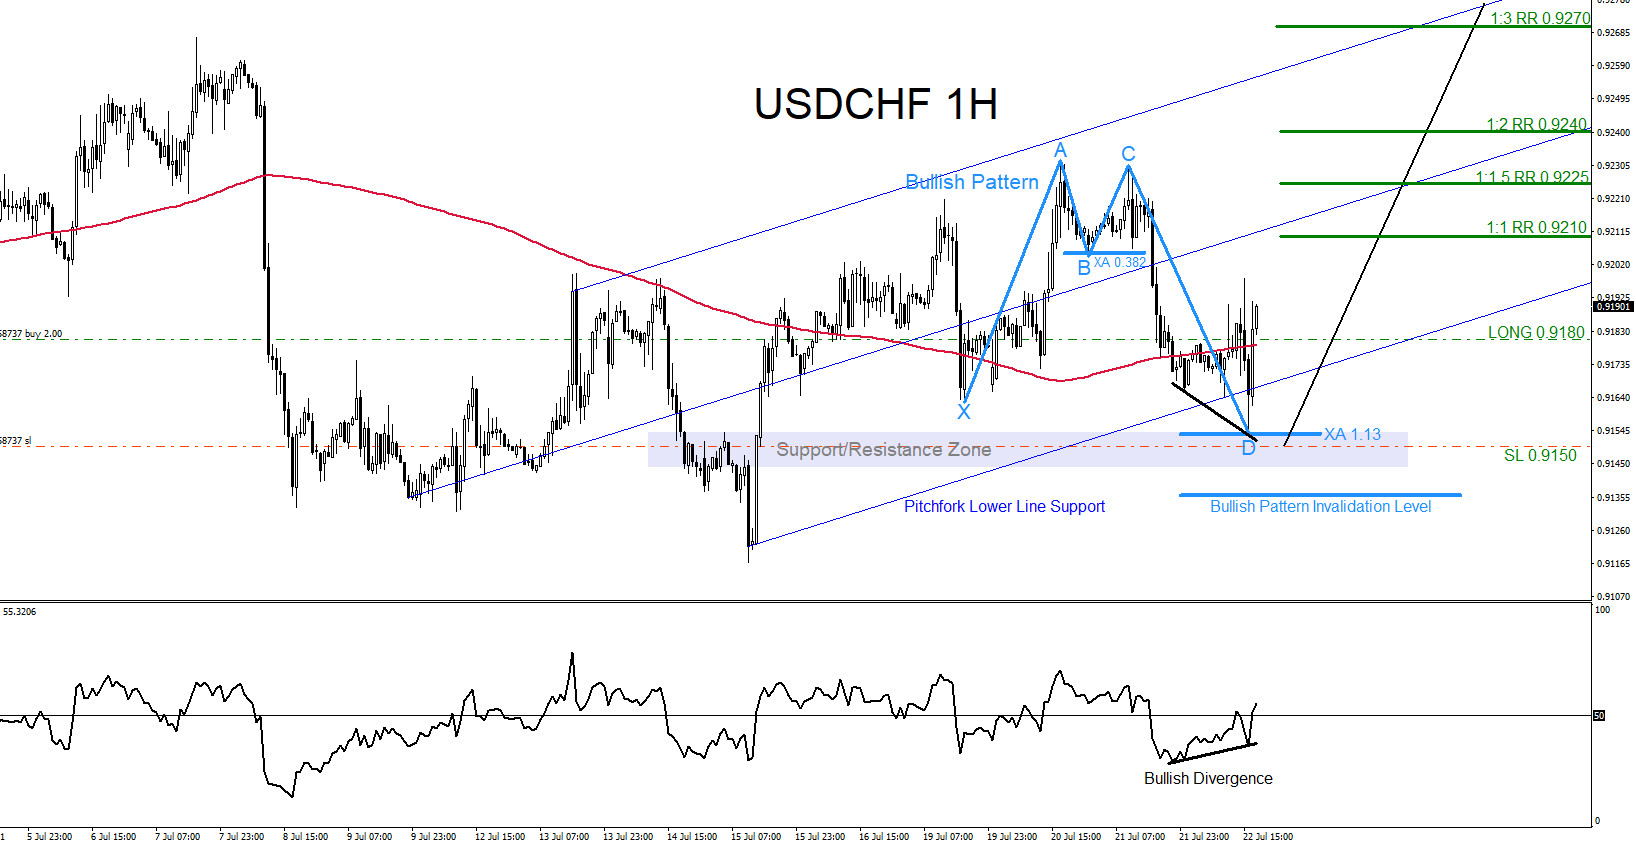 USDCHF : Will the Pair Continue Higher?